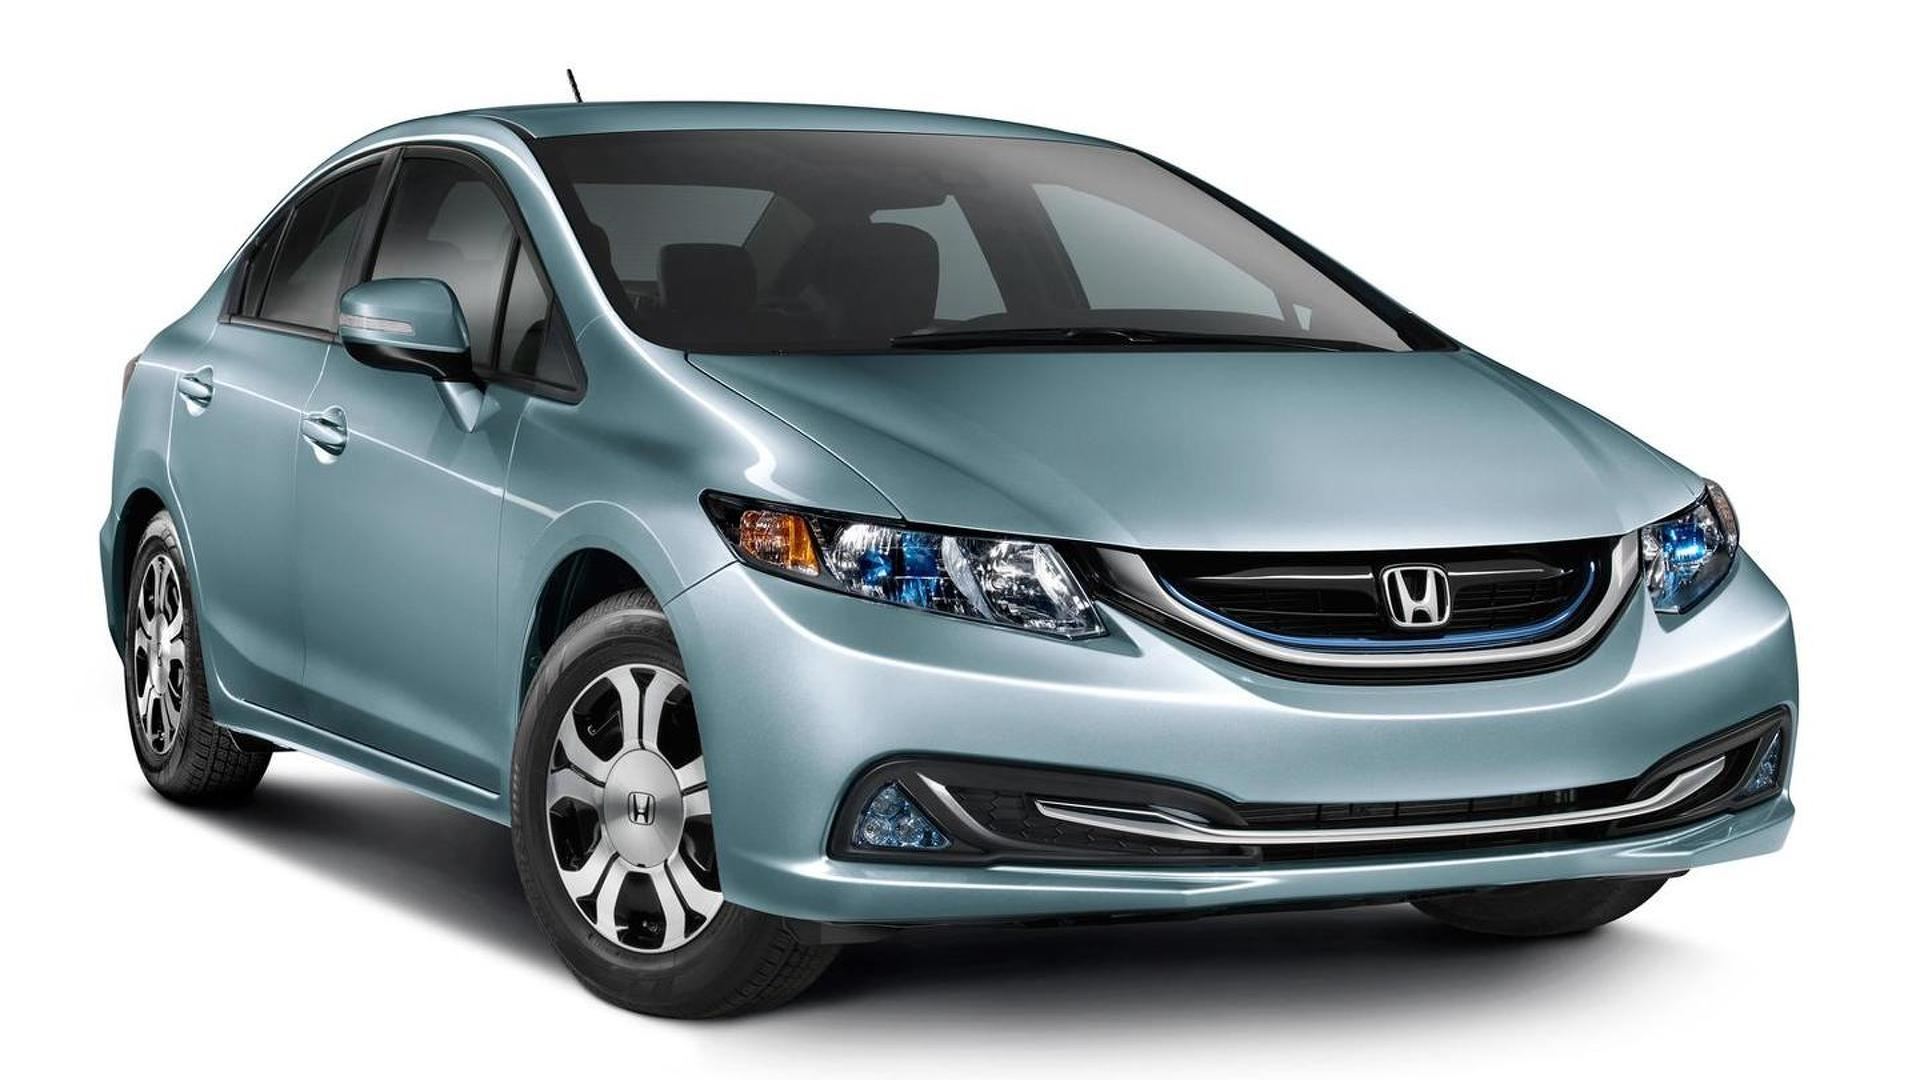 2015 Honda Civic Hybrid and Natural Gas pricing disclosed in United